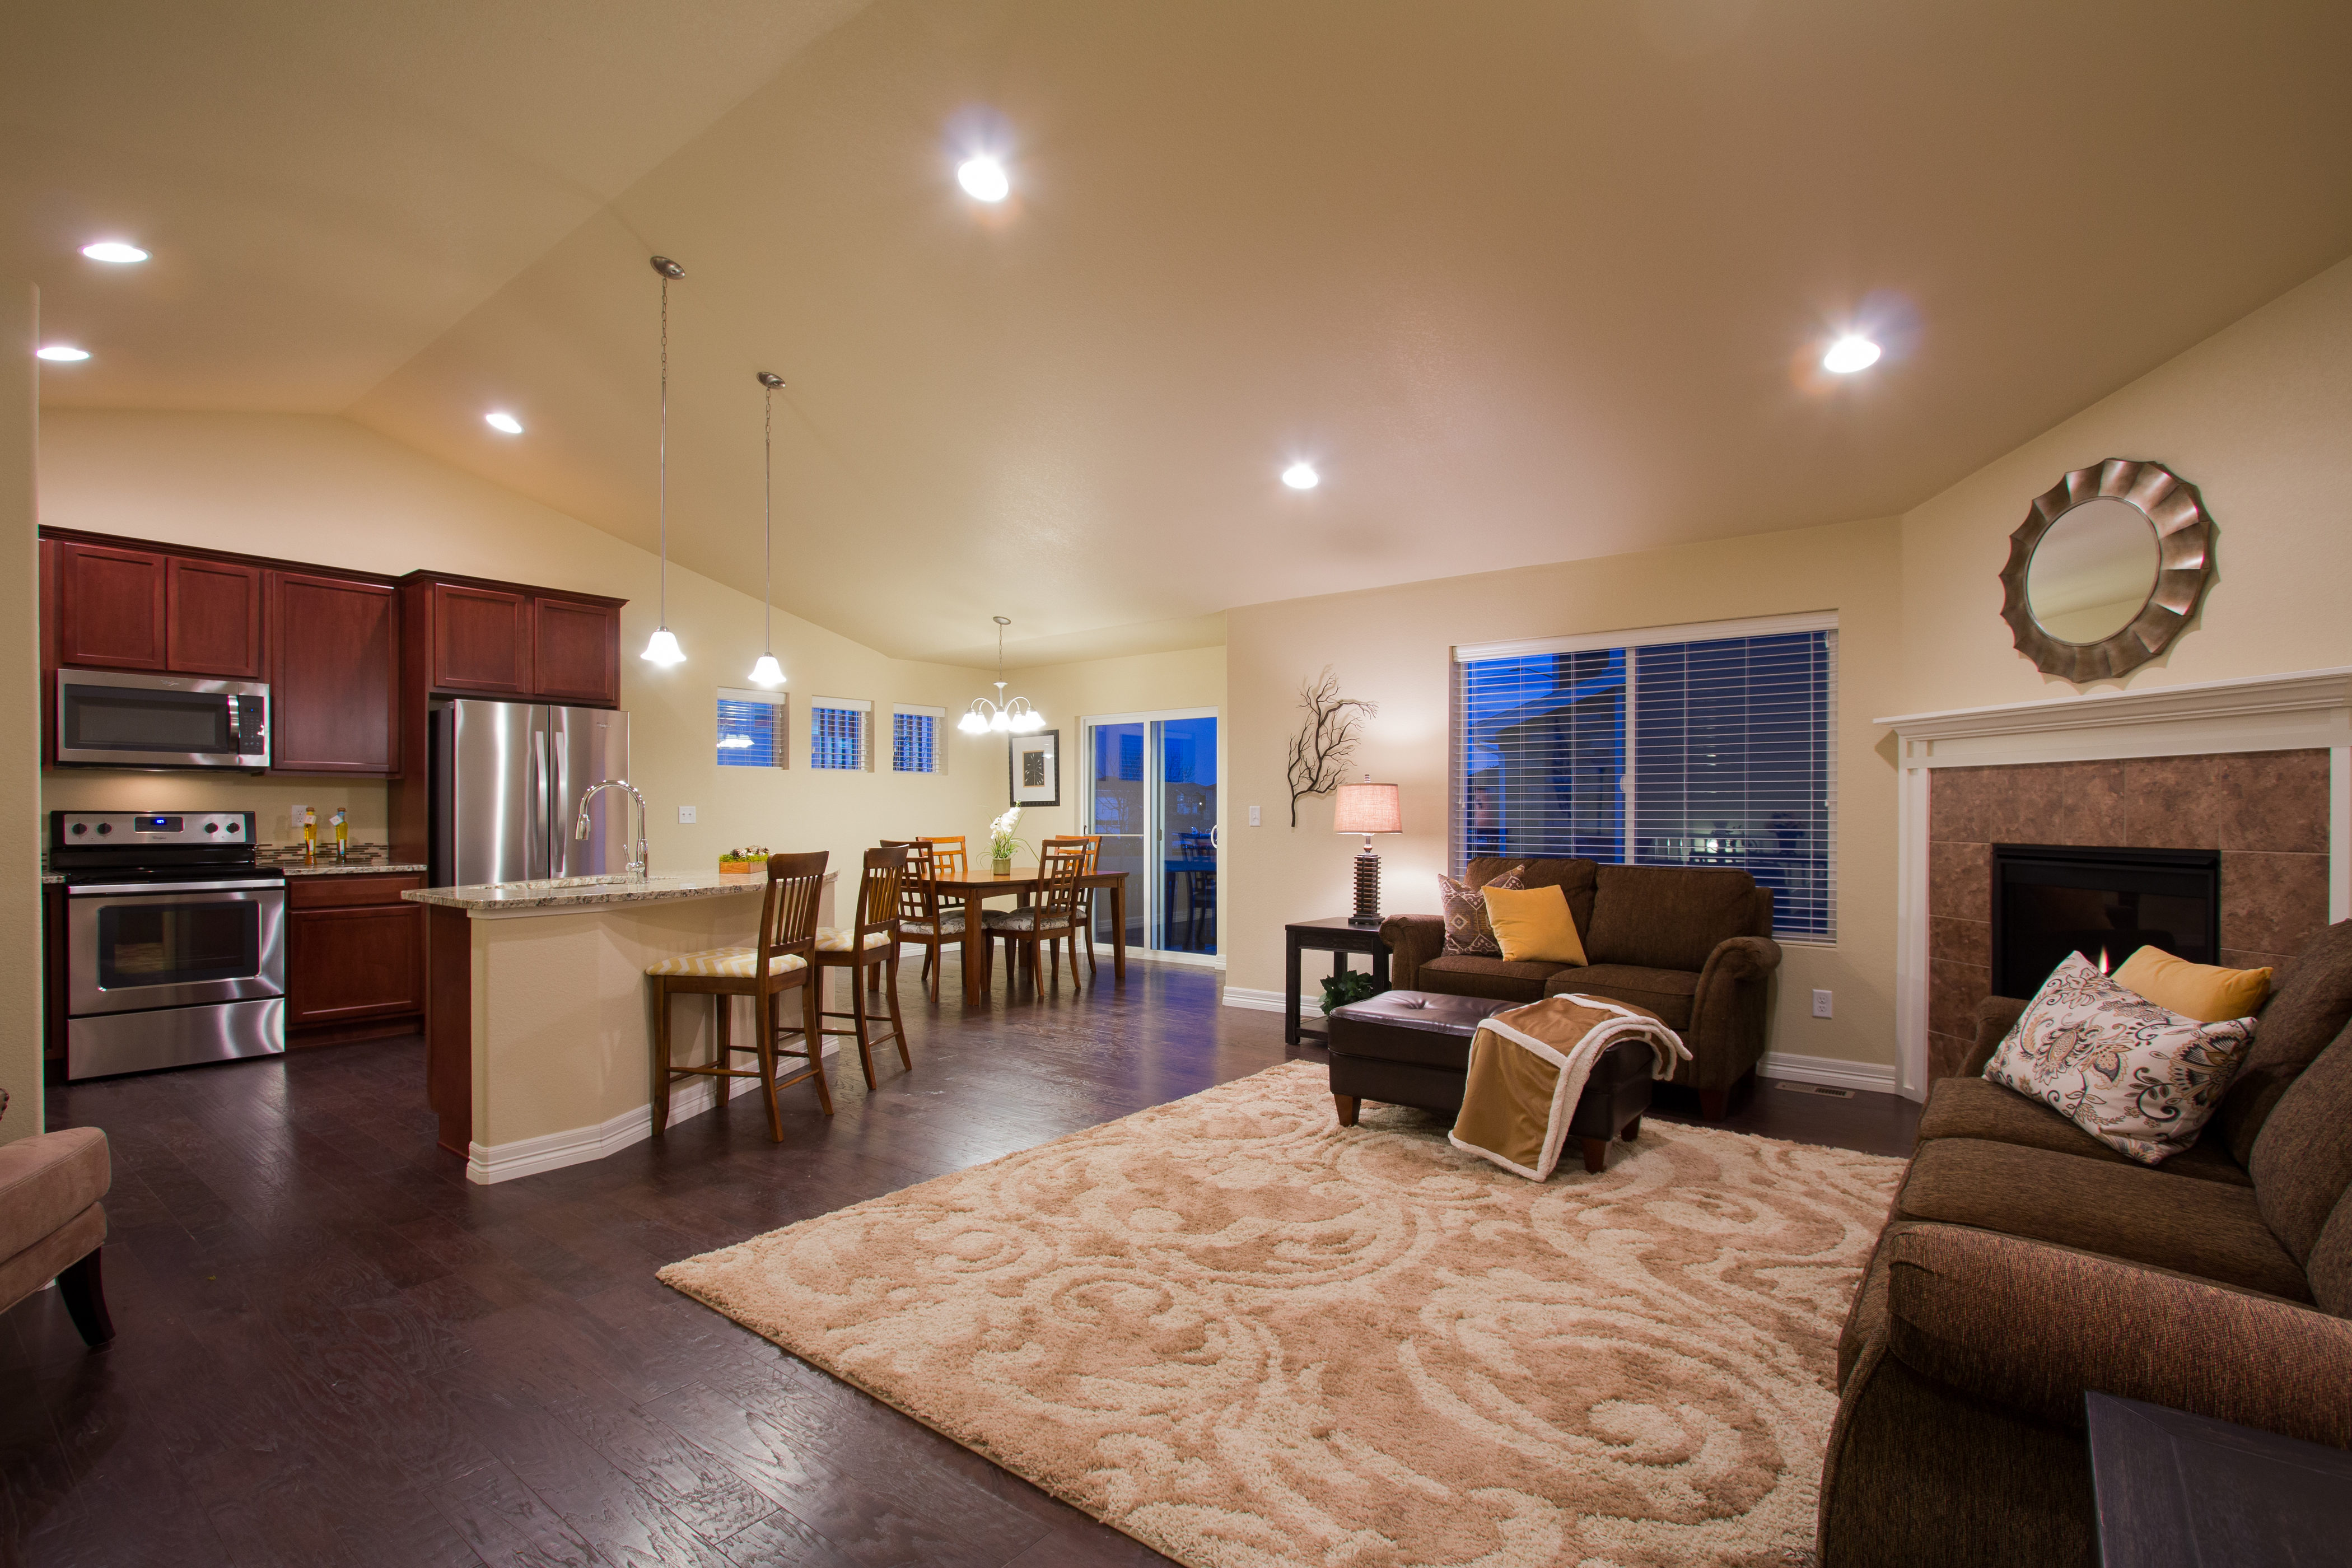 15-silverthorne-milliken-great_room_kitchen_area-new_home_community